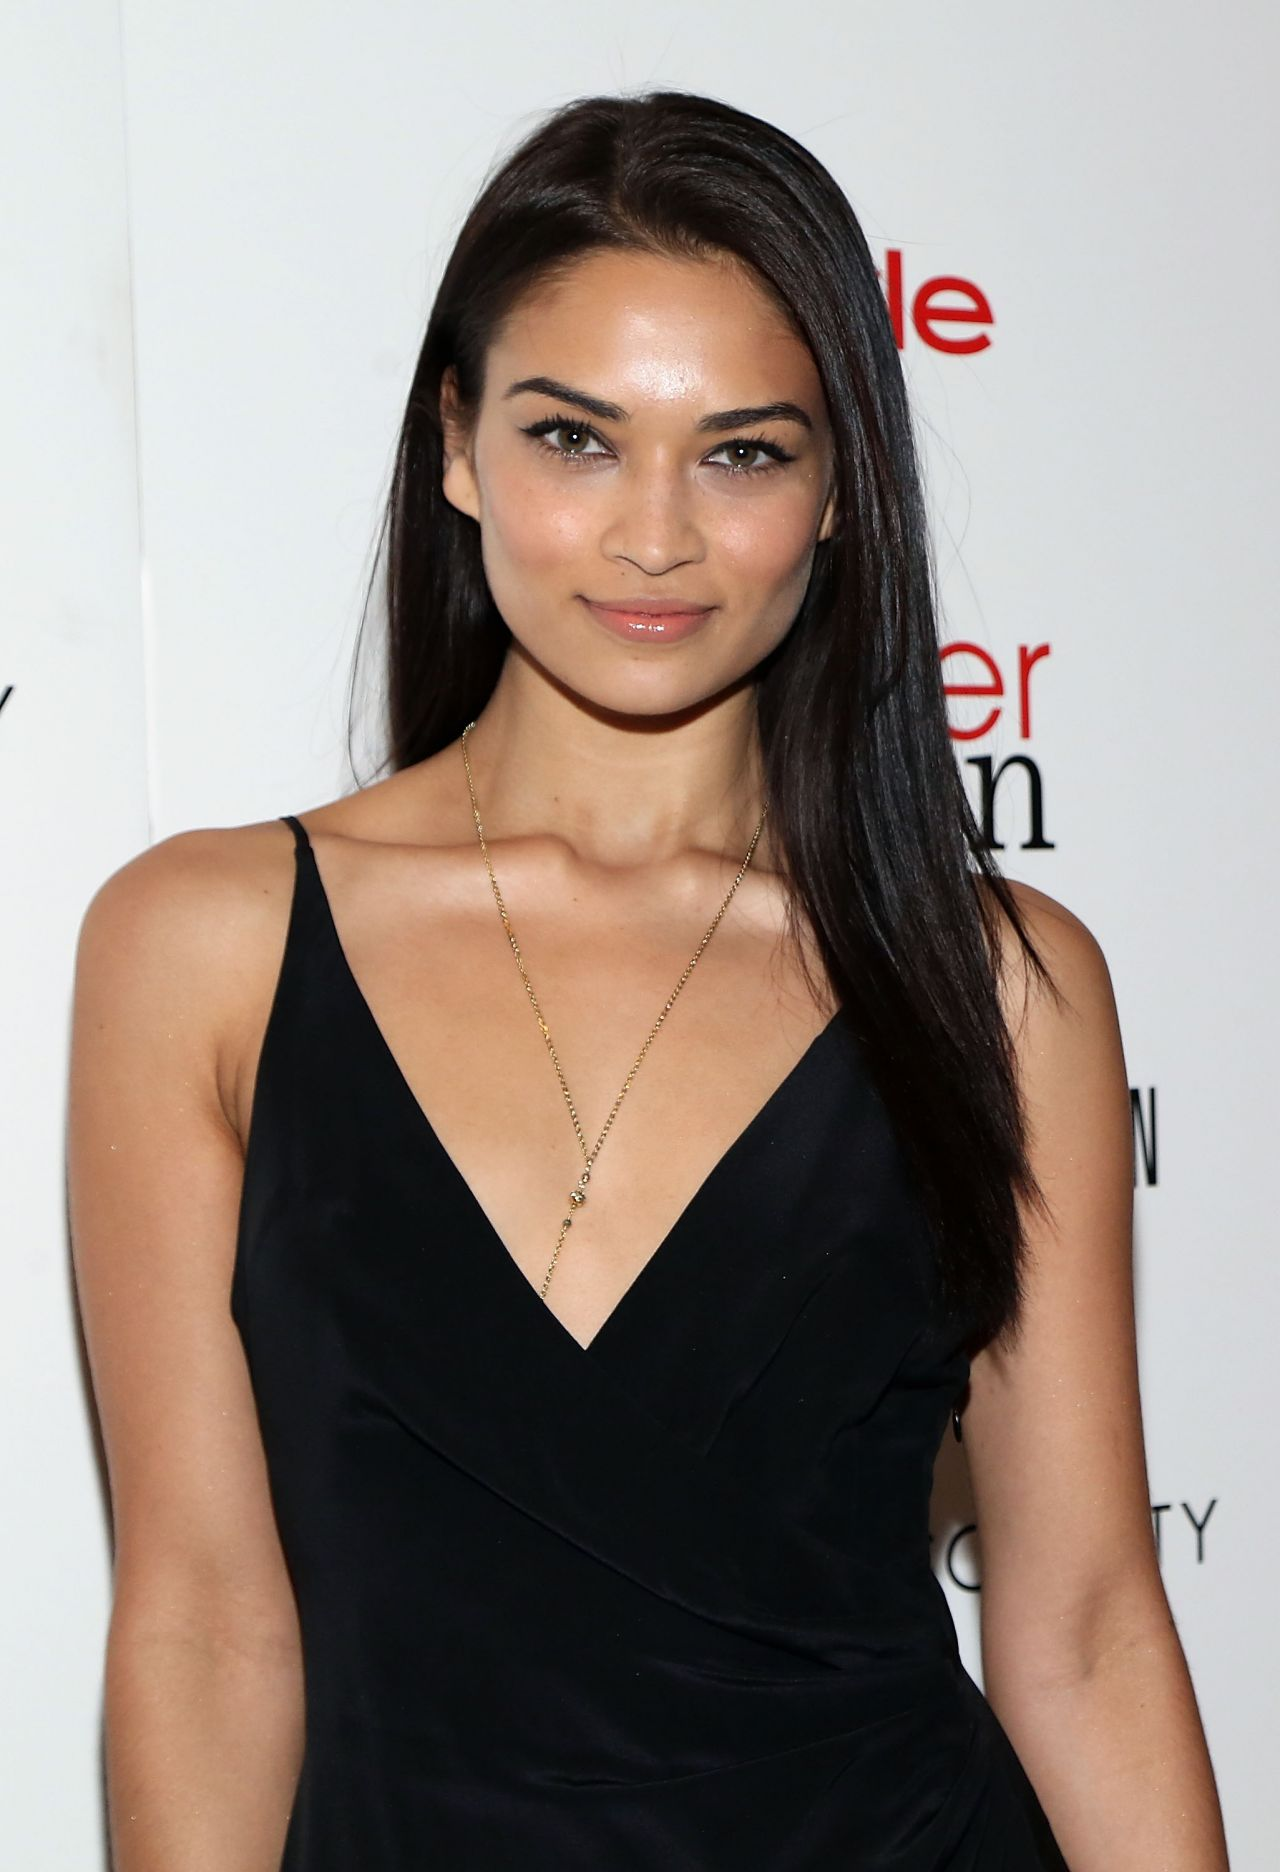 Shanina Shaik The Other Woman Instyle Screening In New